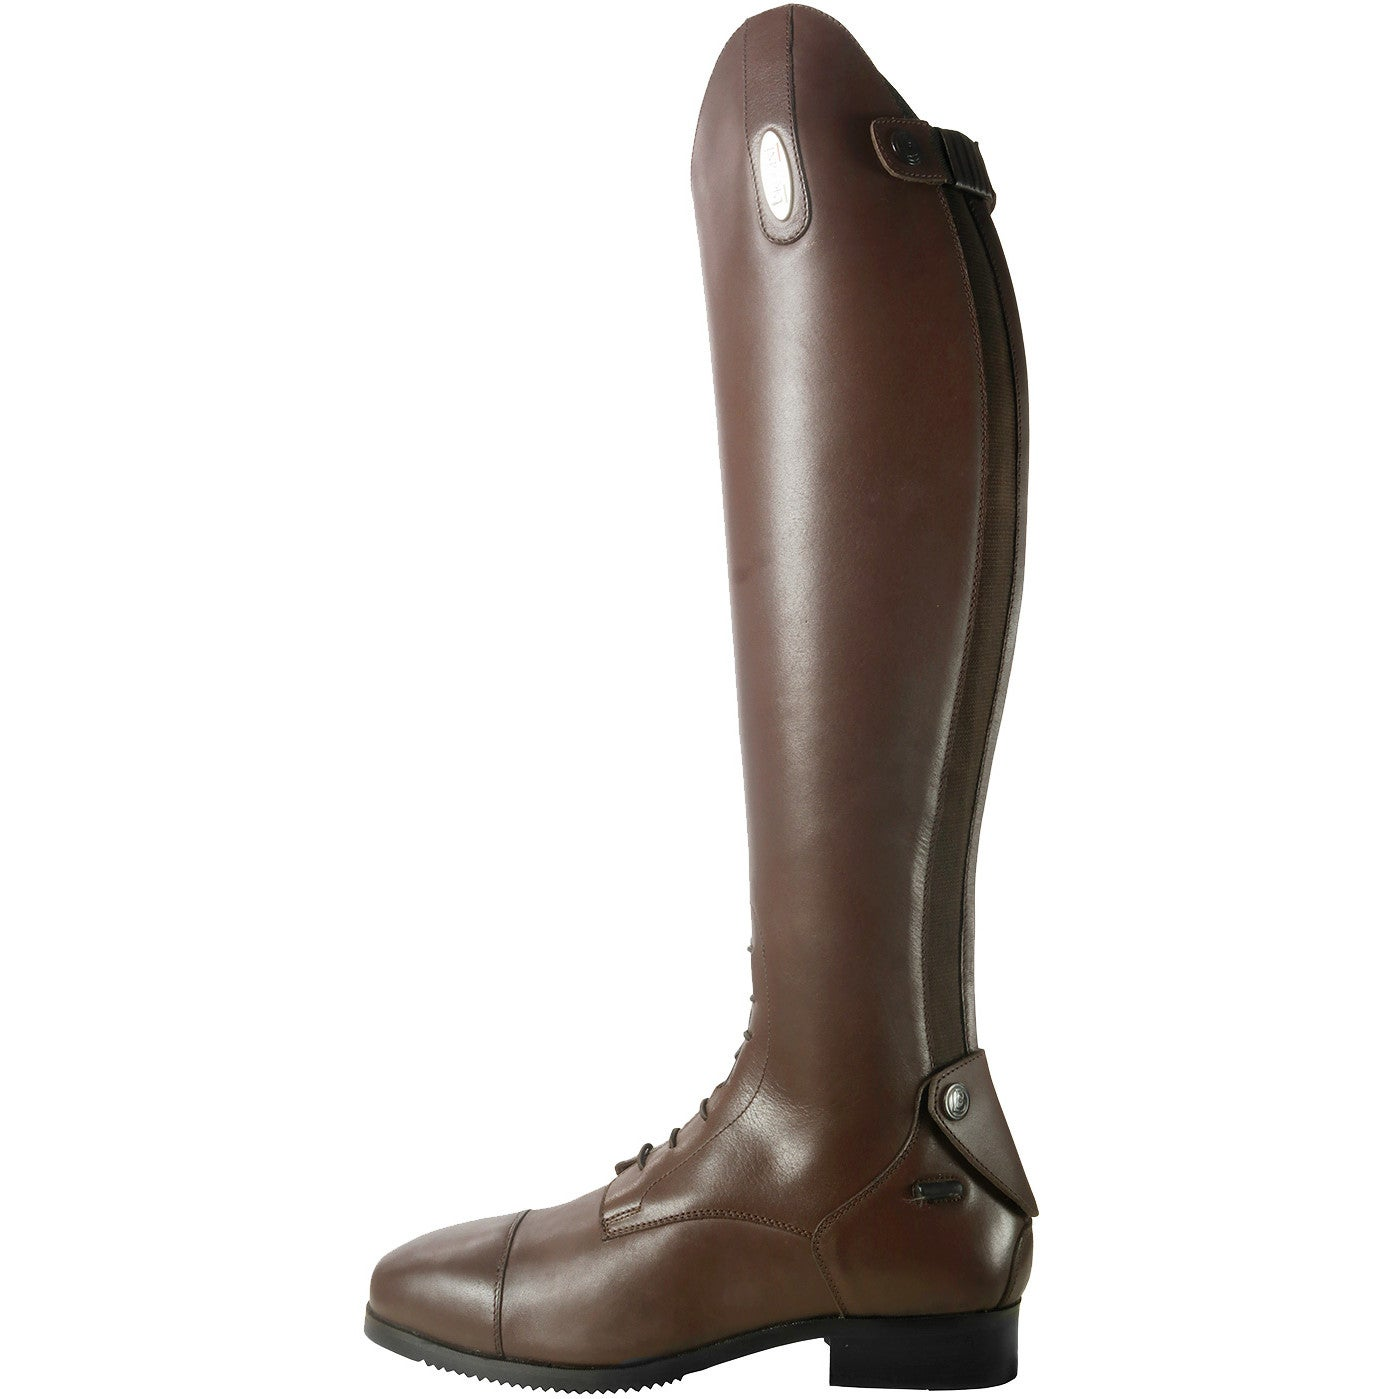 Brogini CAPITOLI V2 Long Tall Leather Grip Strech Riding Boots Black//Brown 3-11